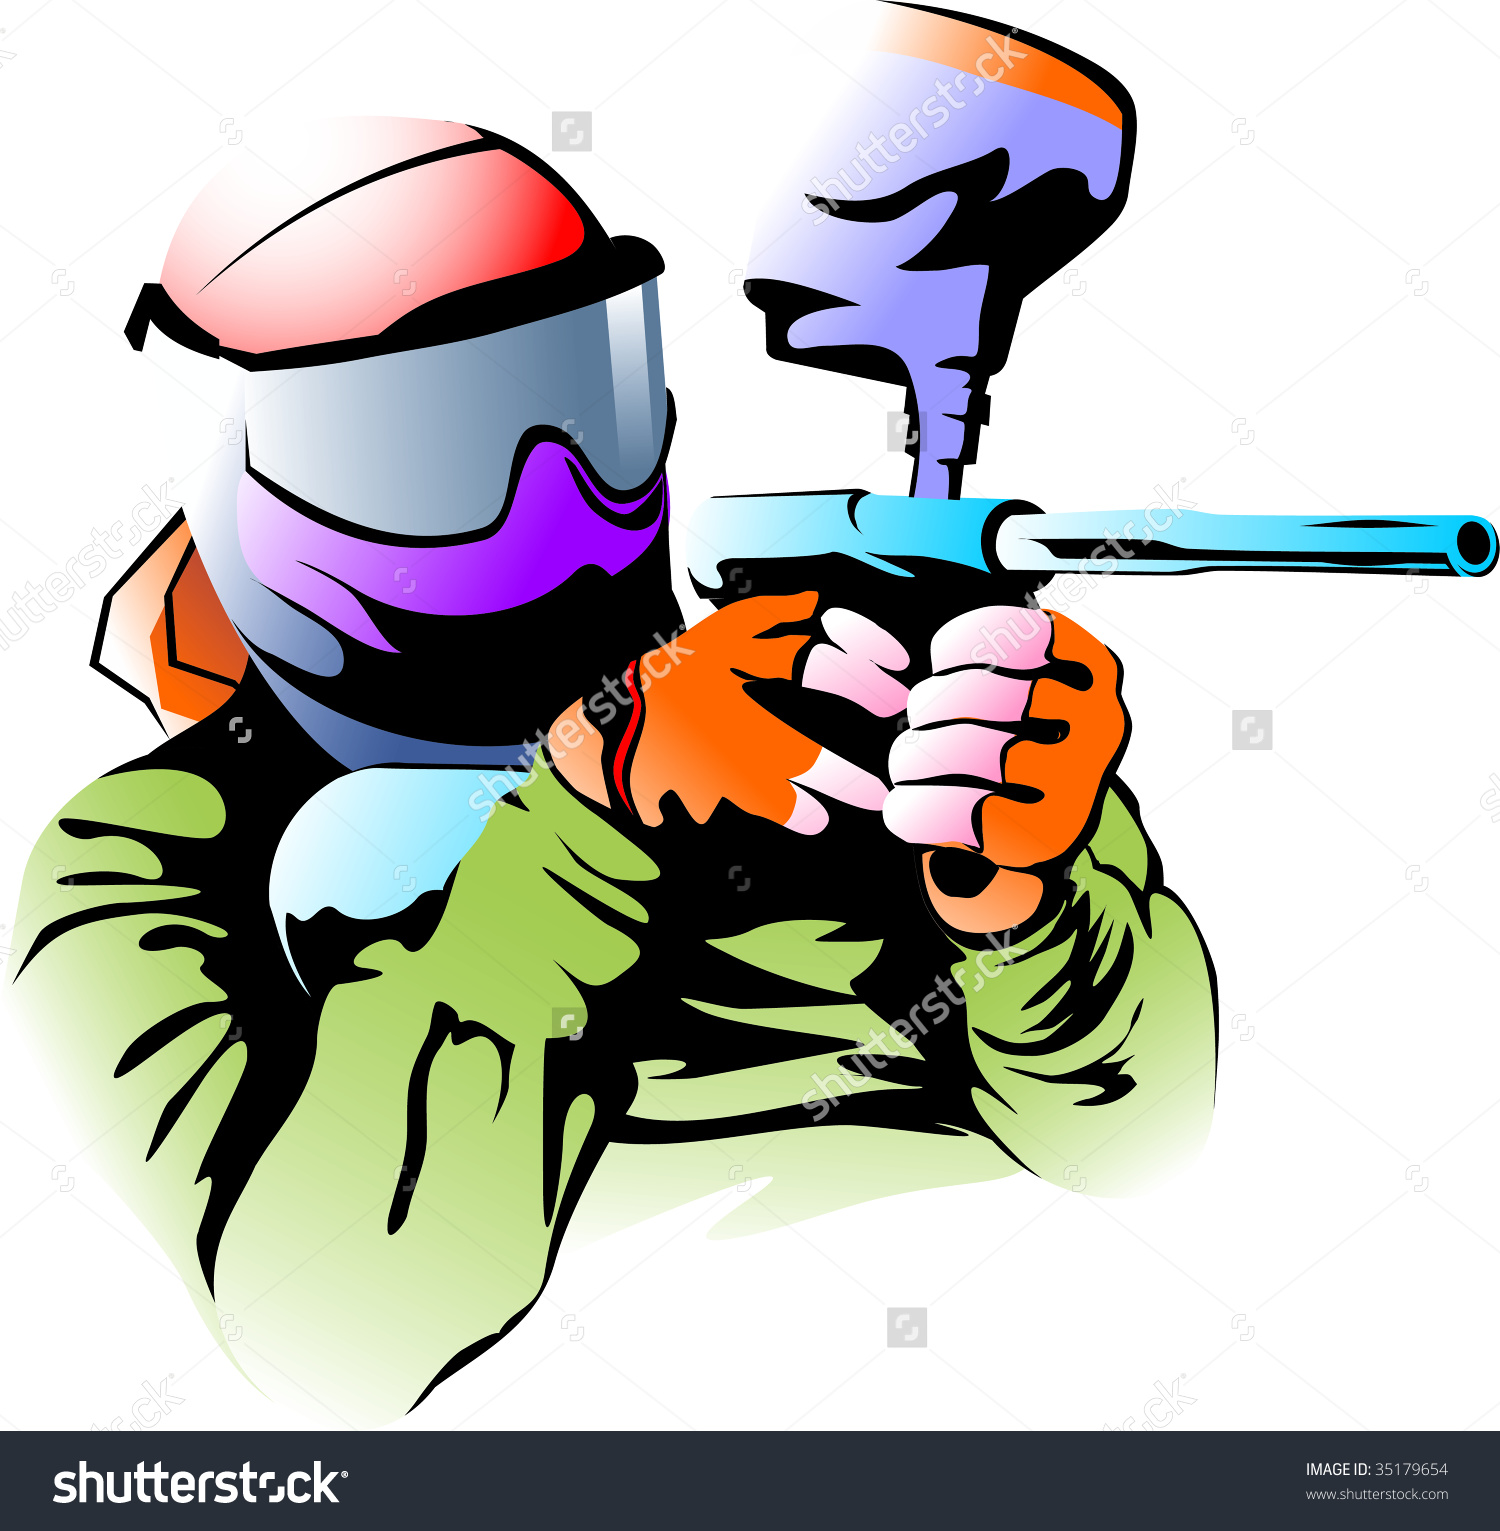 Vector illustration of a figure of the player in a paintball